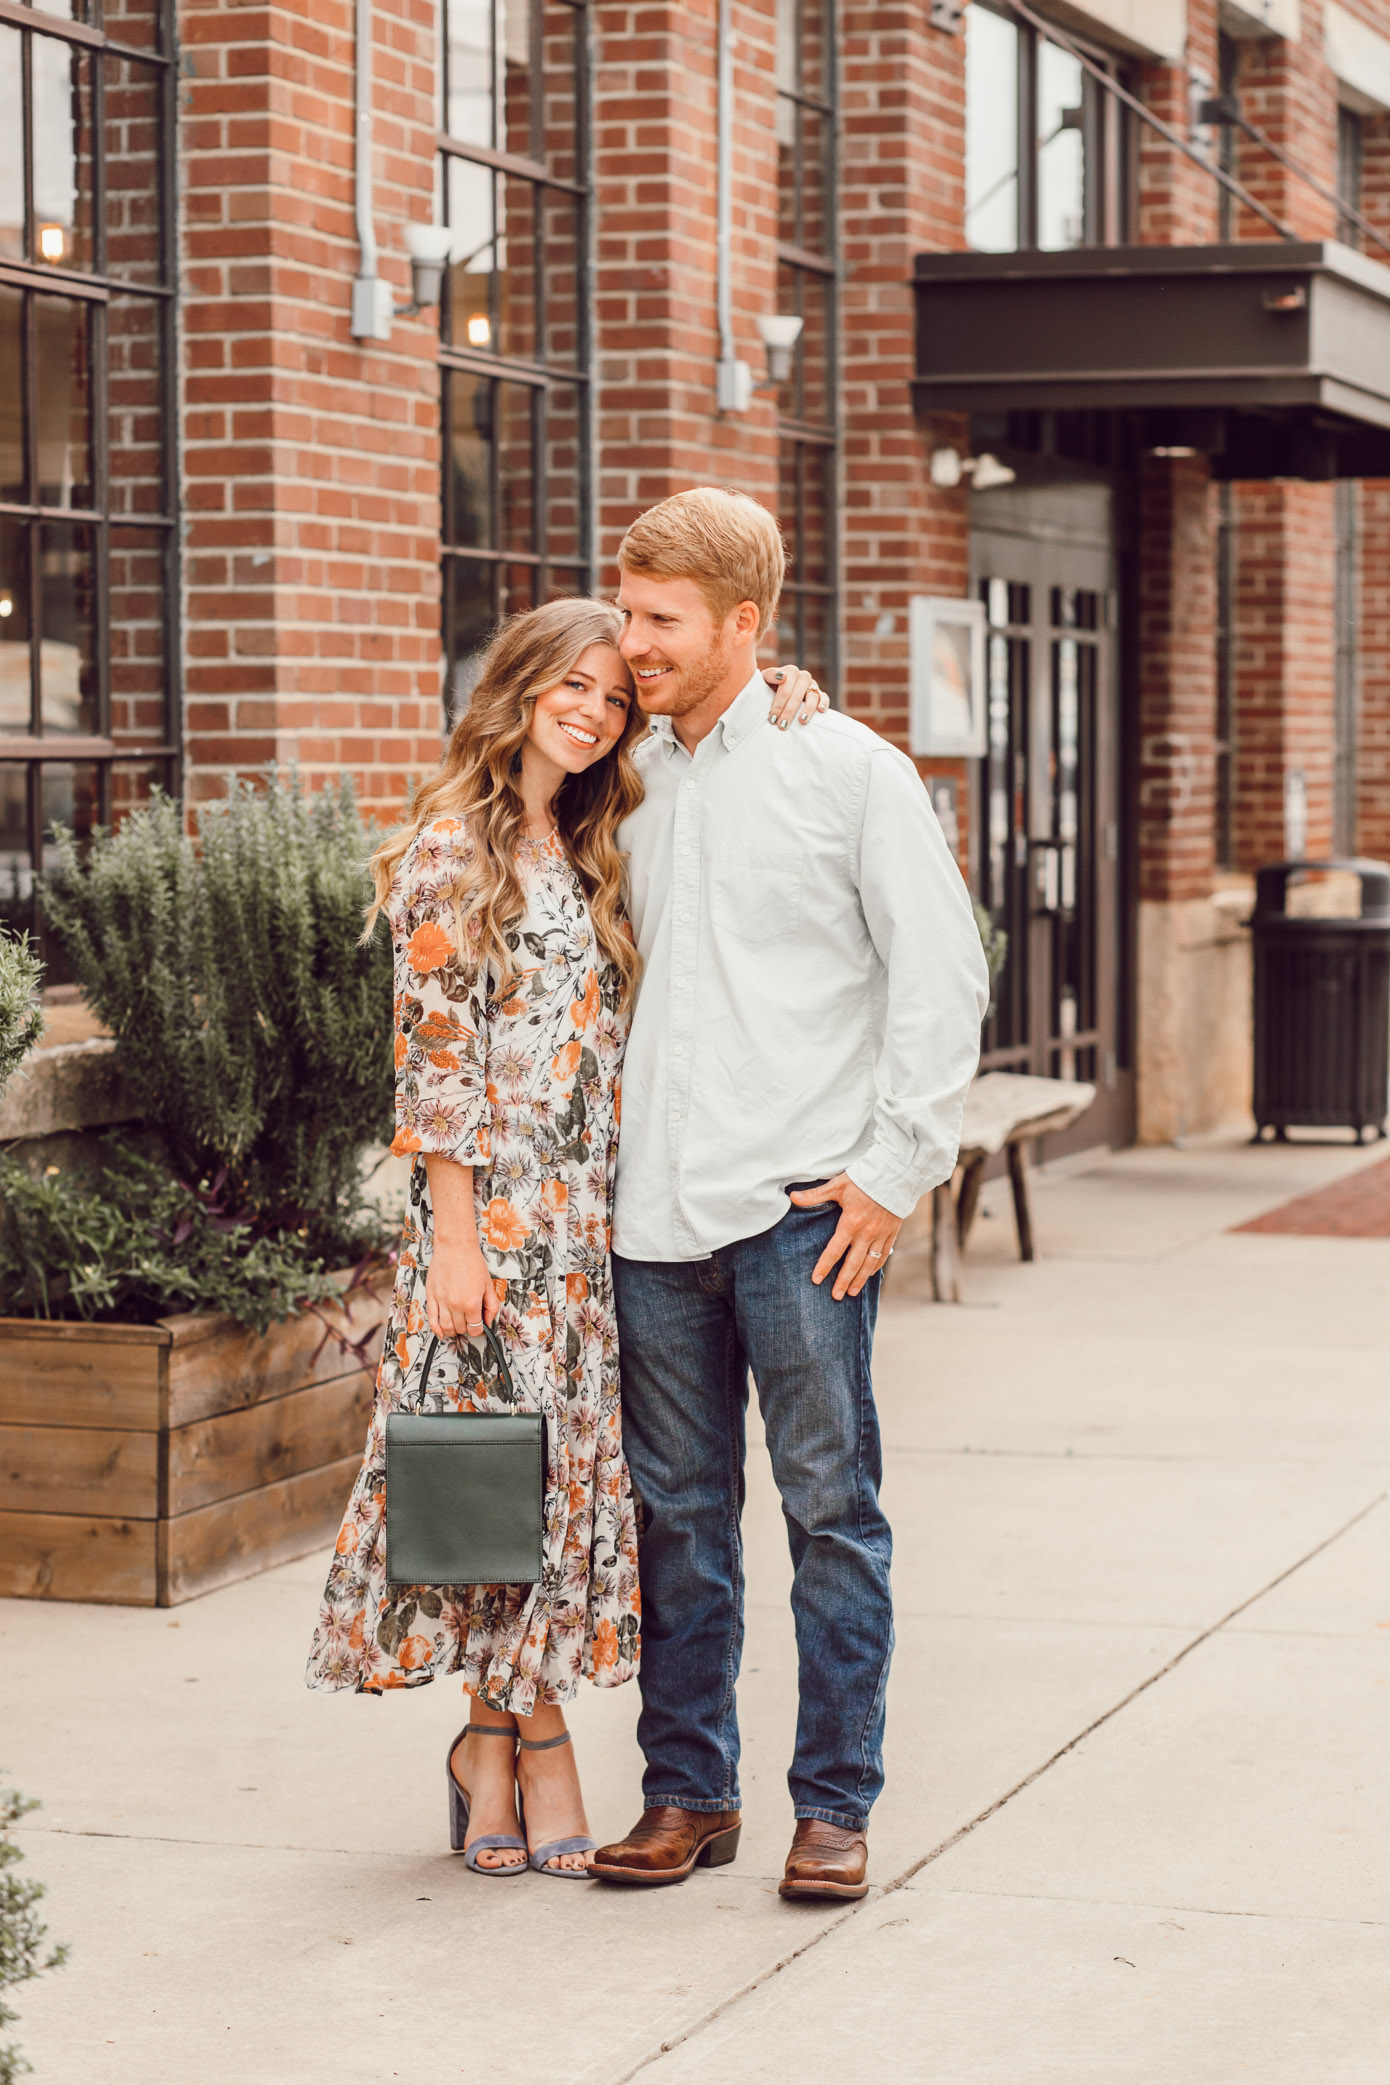 Five Ways to Step Up Your Date Night Beauty Game | Date Night Beauty Tips featured on Louella Reese